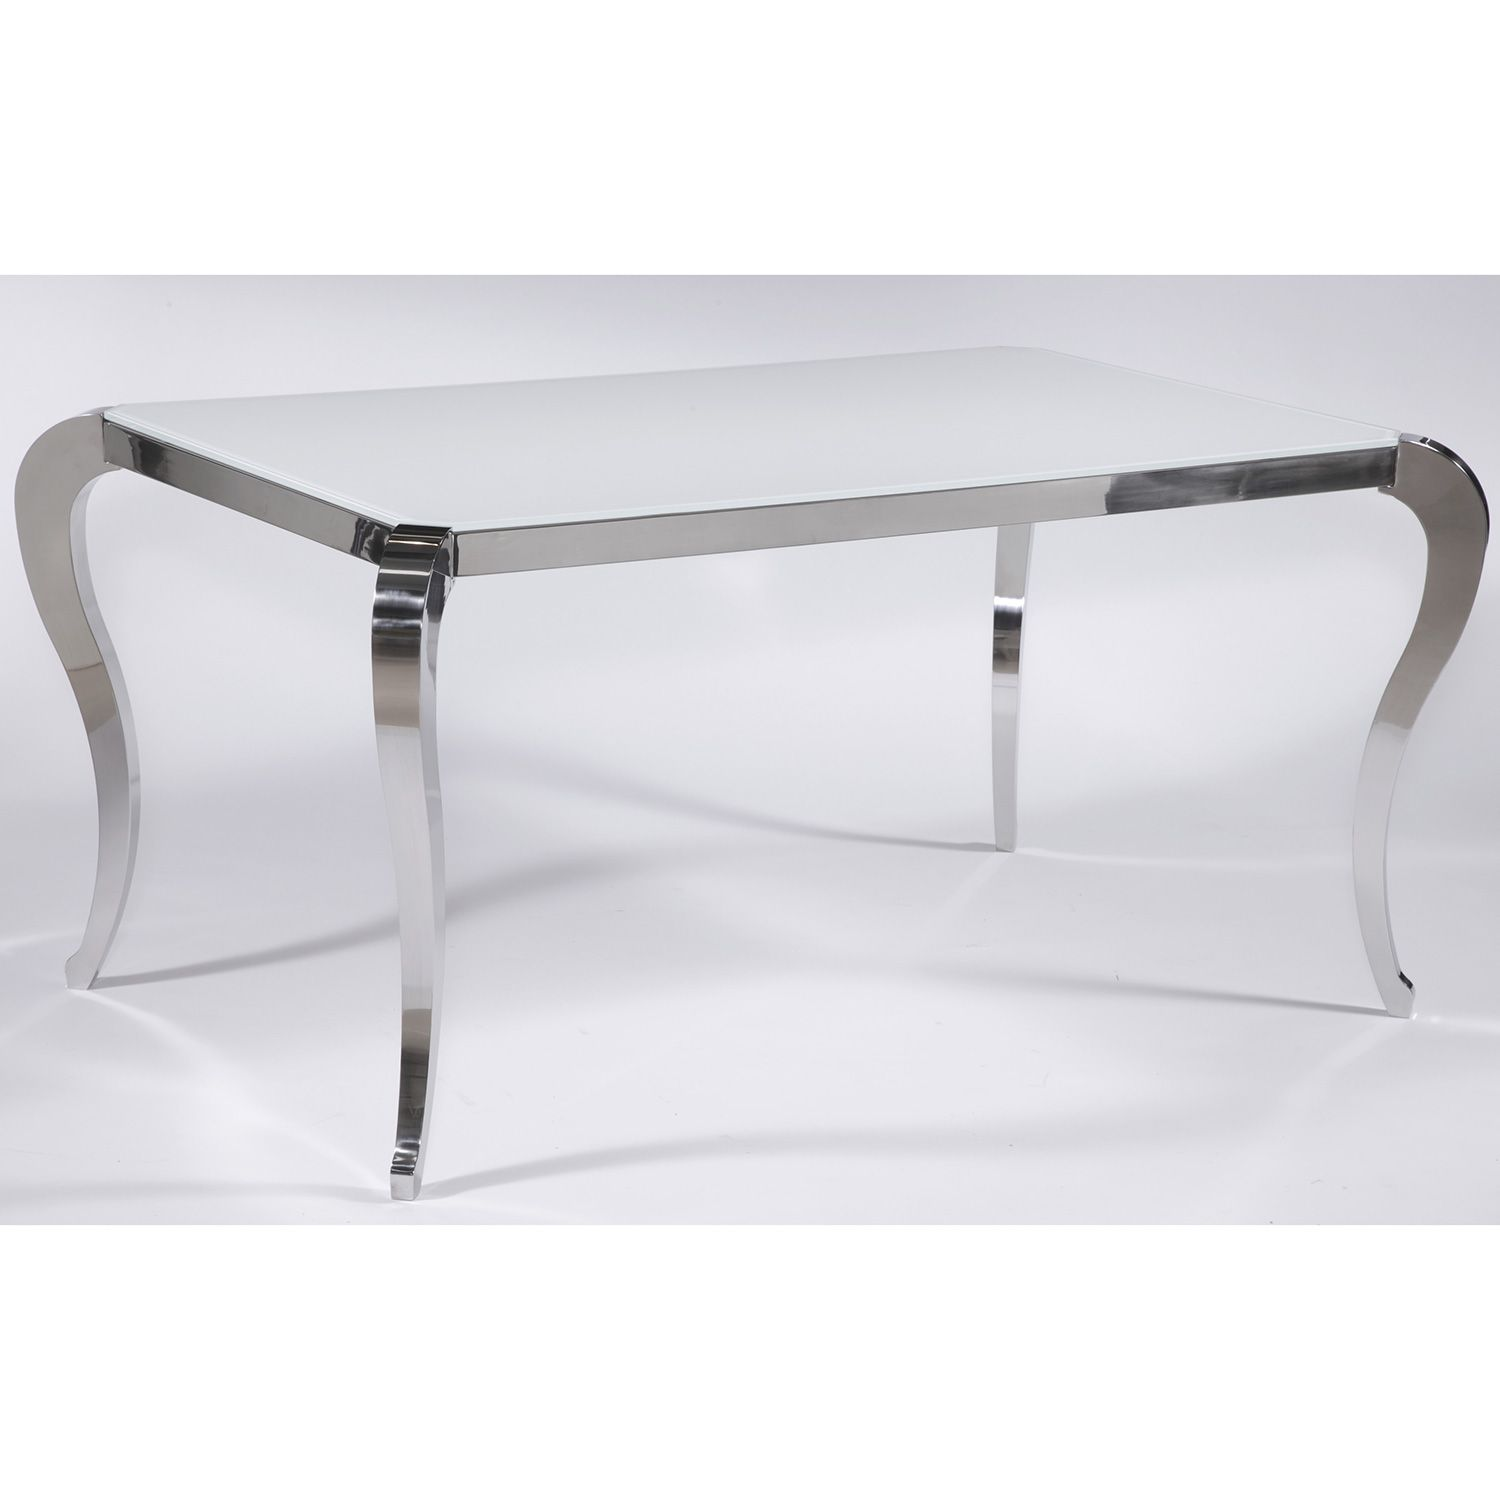 Chintaly Imports Teresa Dt B T Teresa Dining Table Stainless Steel Super White Starphire Glass Top Glass Dining Table White Glass Dining Table Glass Top Dining Table [ 1500 x 1500 Pixel ]